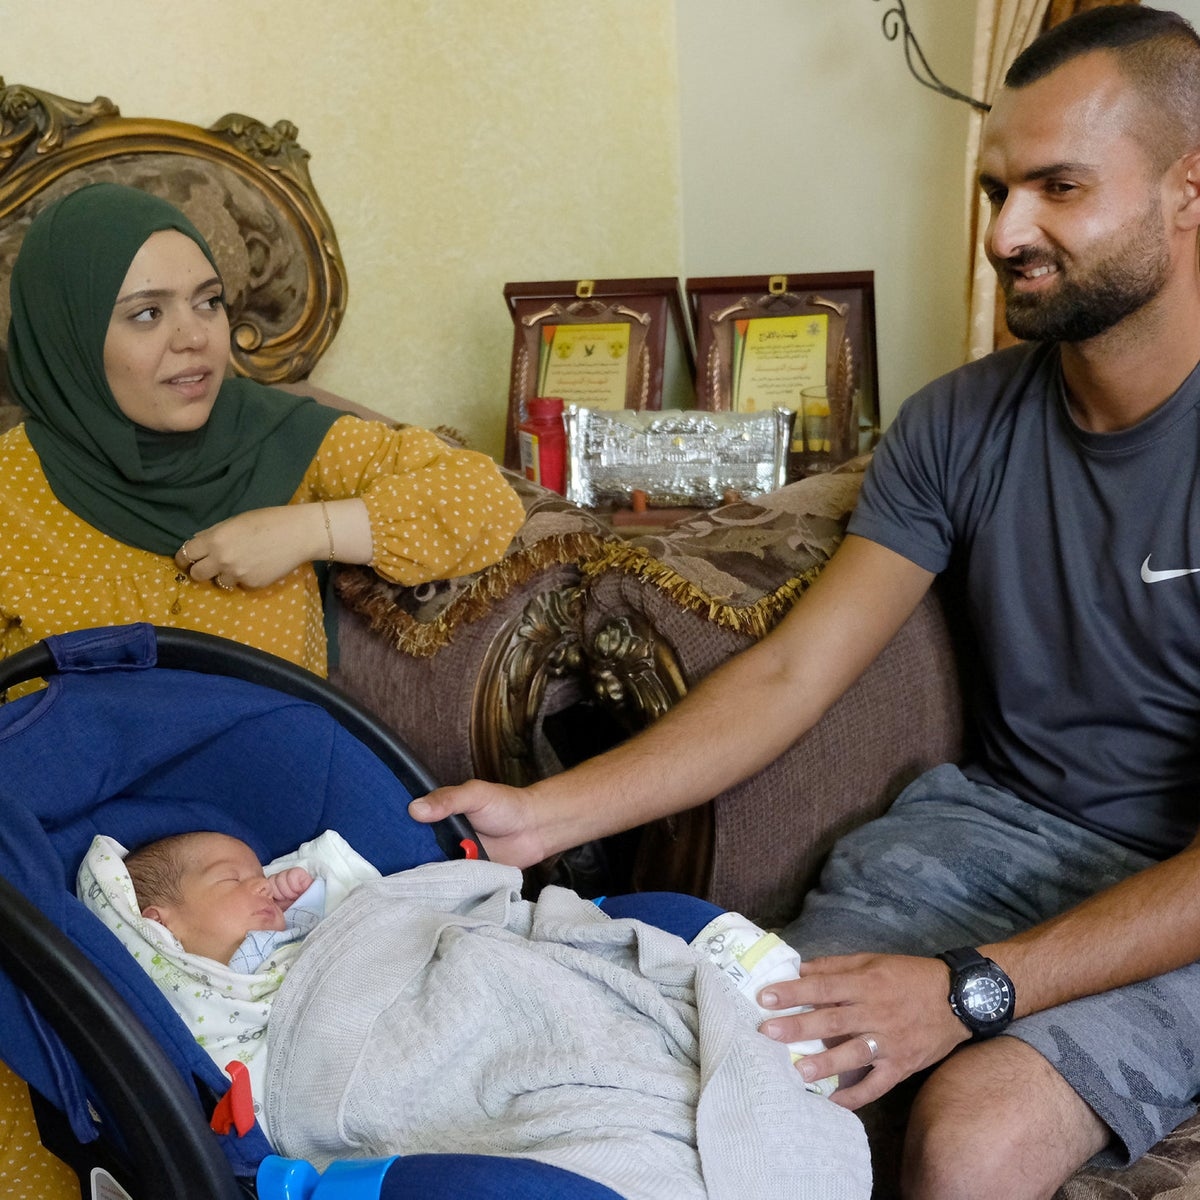 Anhar al-Dik, her husband Thaar al-Haj'a and their son Ala, this week. He spent most of his time in the womb of a mother in jail, but was born into a relative sort of freedom.